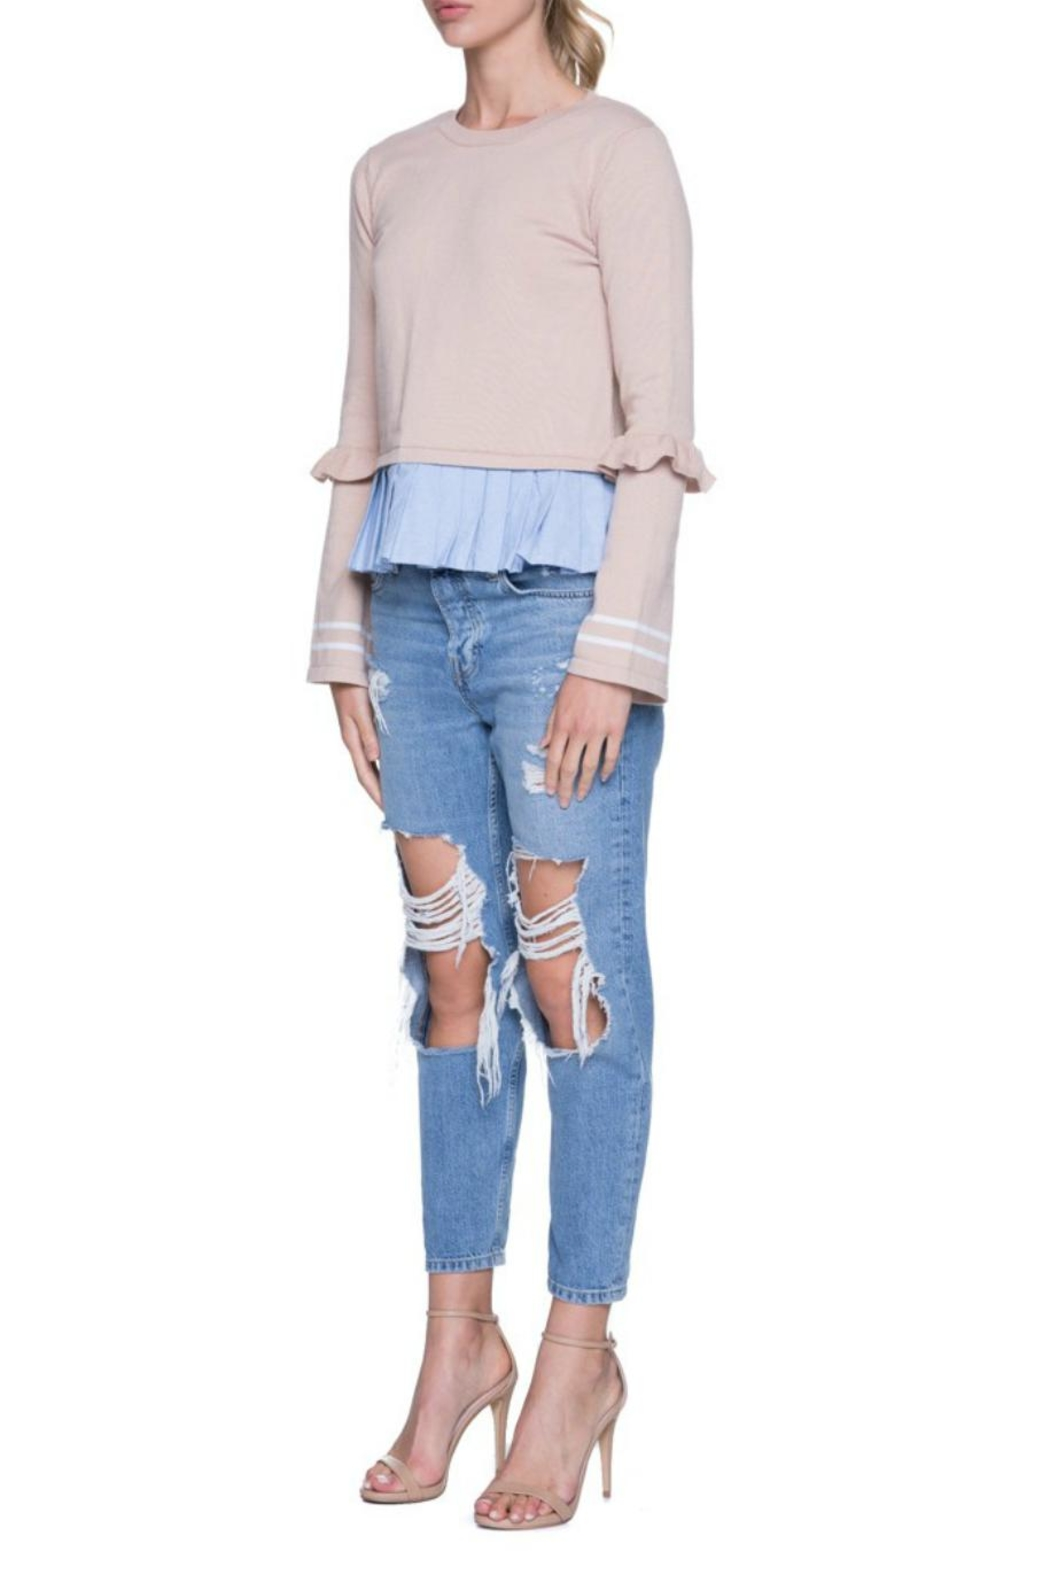 English Factory Ruffle Contrast Knit - Side Cropped Image